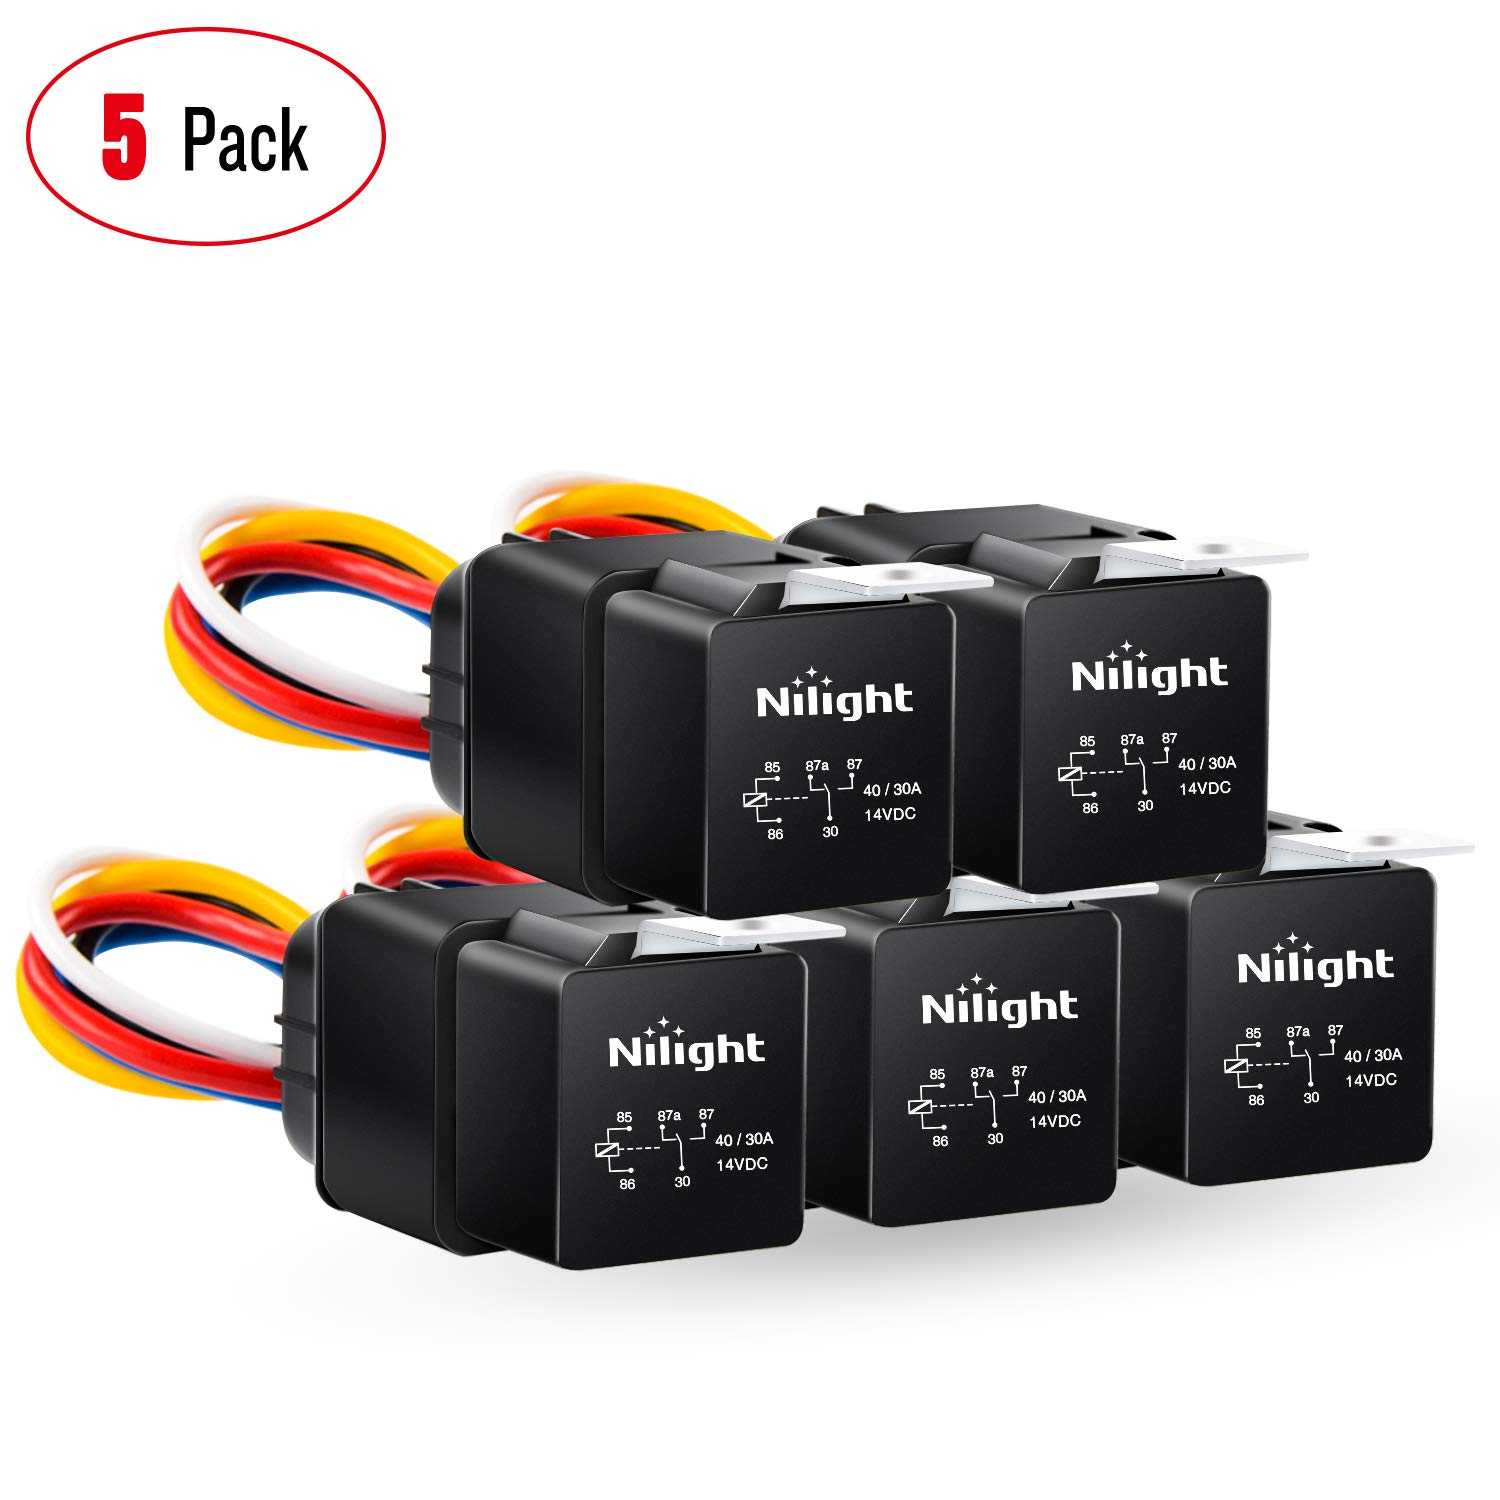 Nilight 50043R Socket 10 Pack SPDT Bosch Style Electrical 12V 30//40 Amp 5-Pin Relays Switch for Automotive Truck Marine Boat,2 Years Warranty